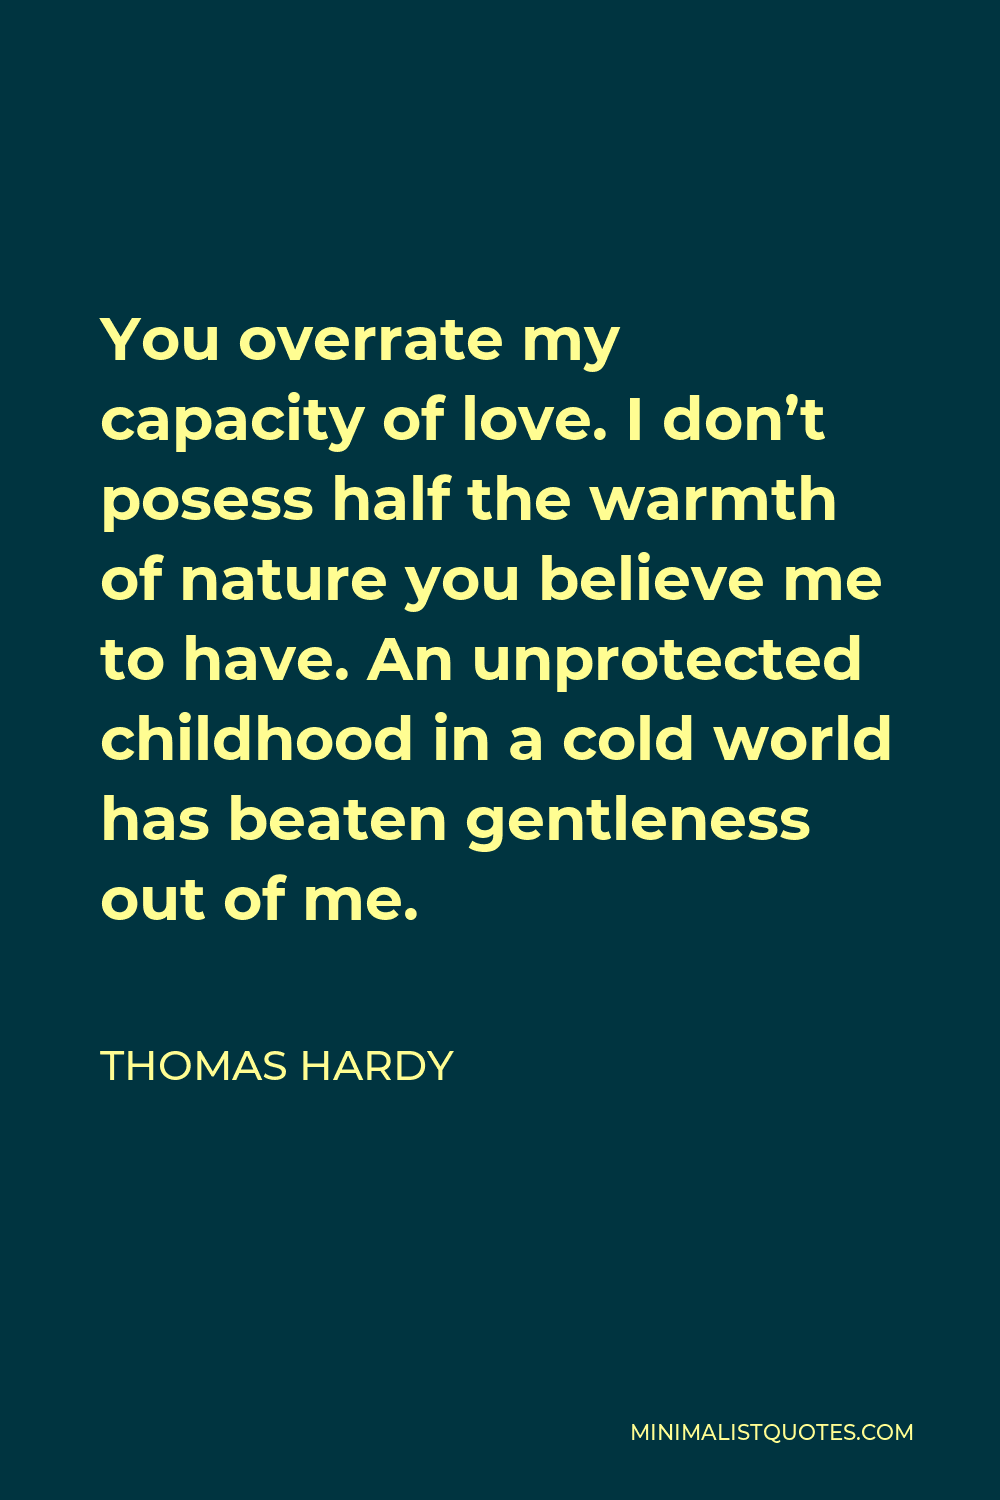 Thomas Hardy Quote - You overrate my capacity of love. I don't posess half the warmth of nature you believe me to have. An unprotected childhood in a cold world has beaten gentleness out of me.